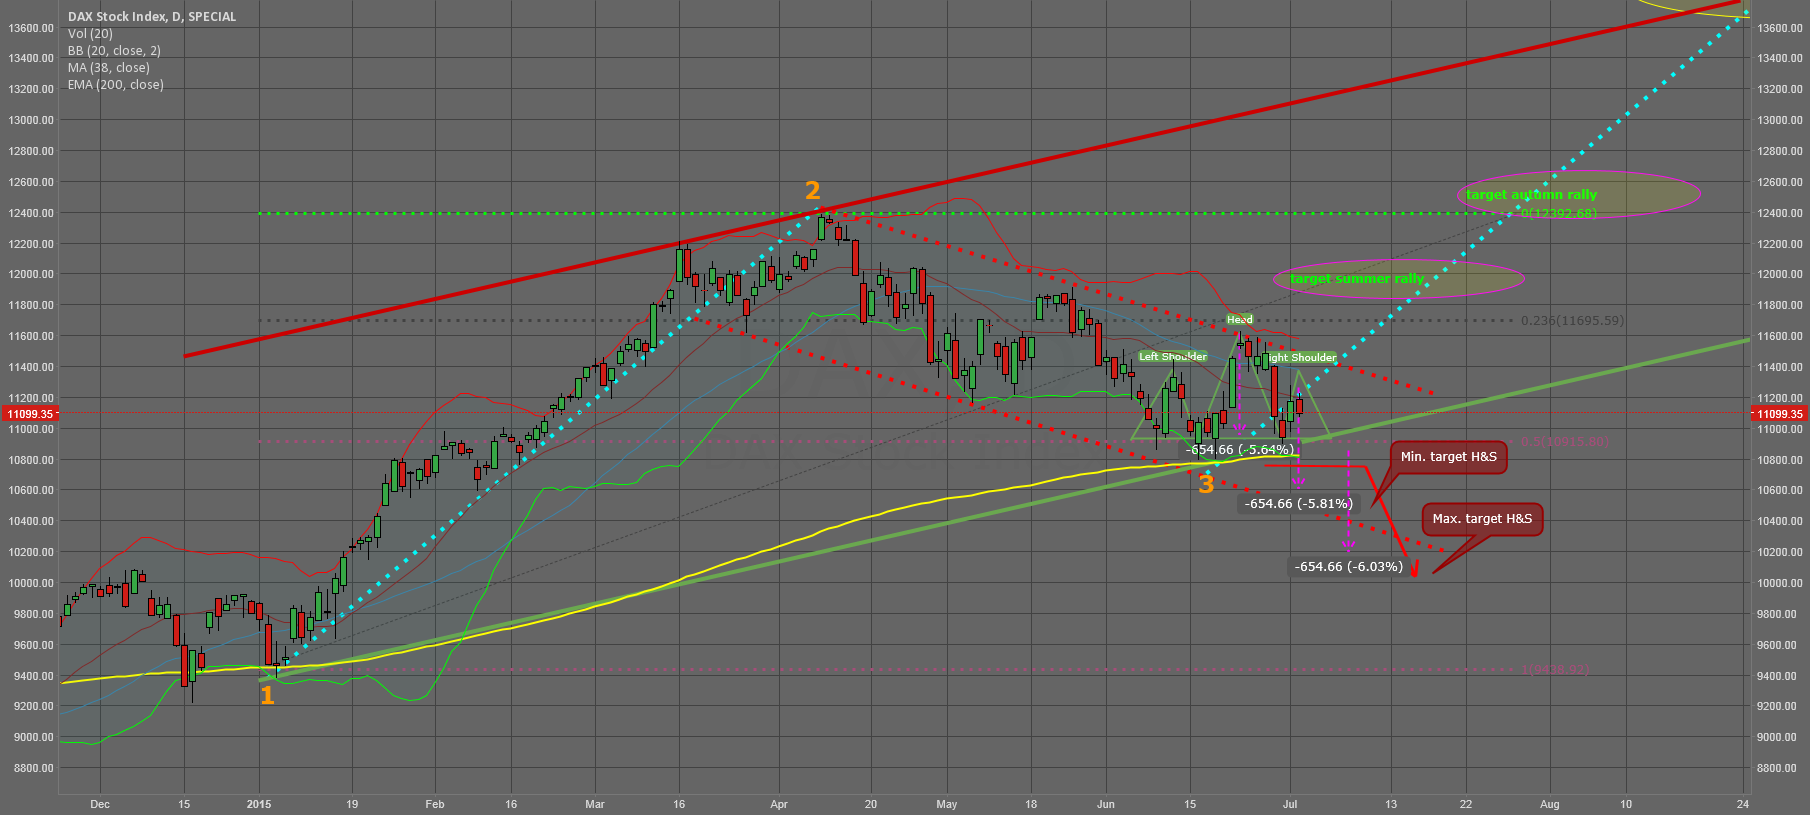 Is Dax forming a bearish H&S?